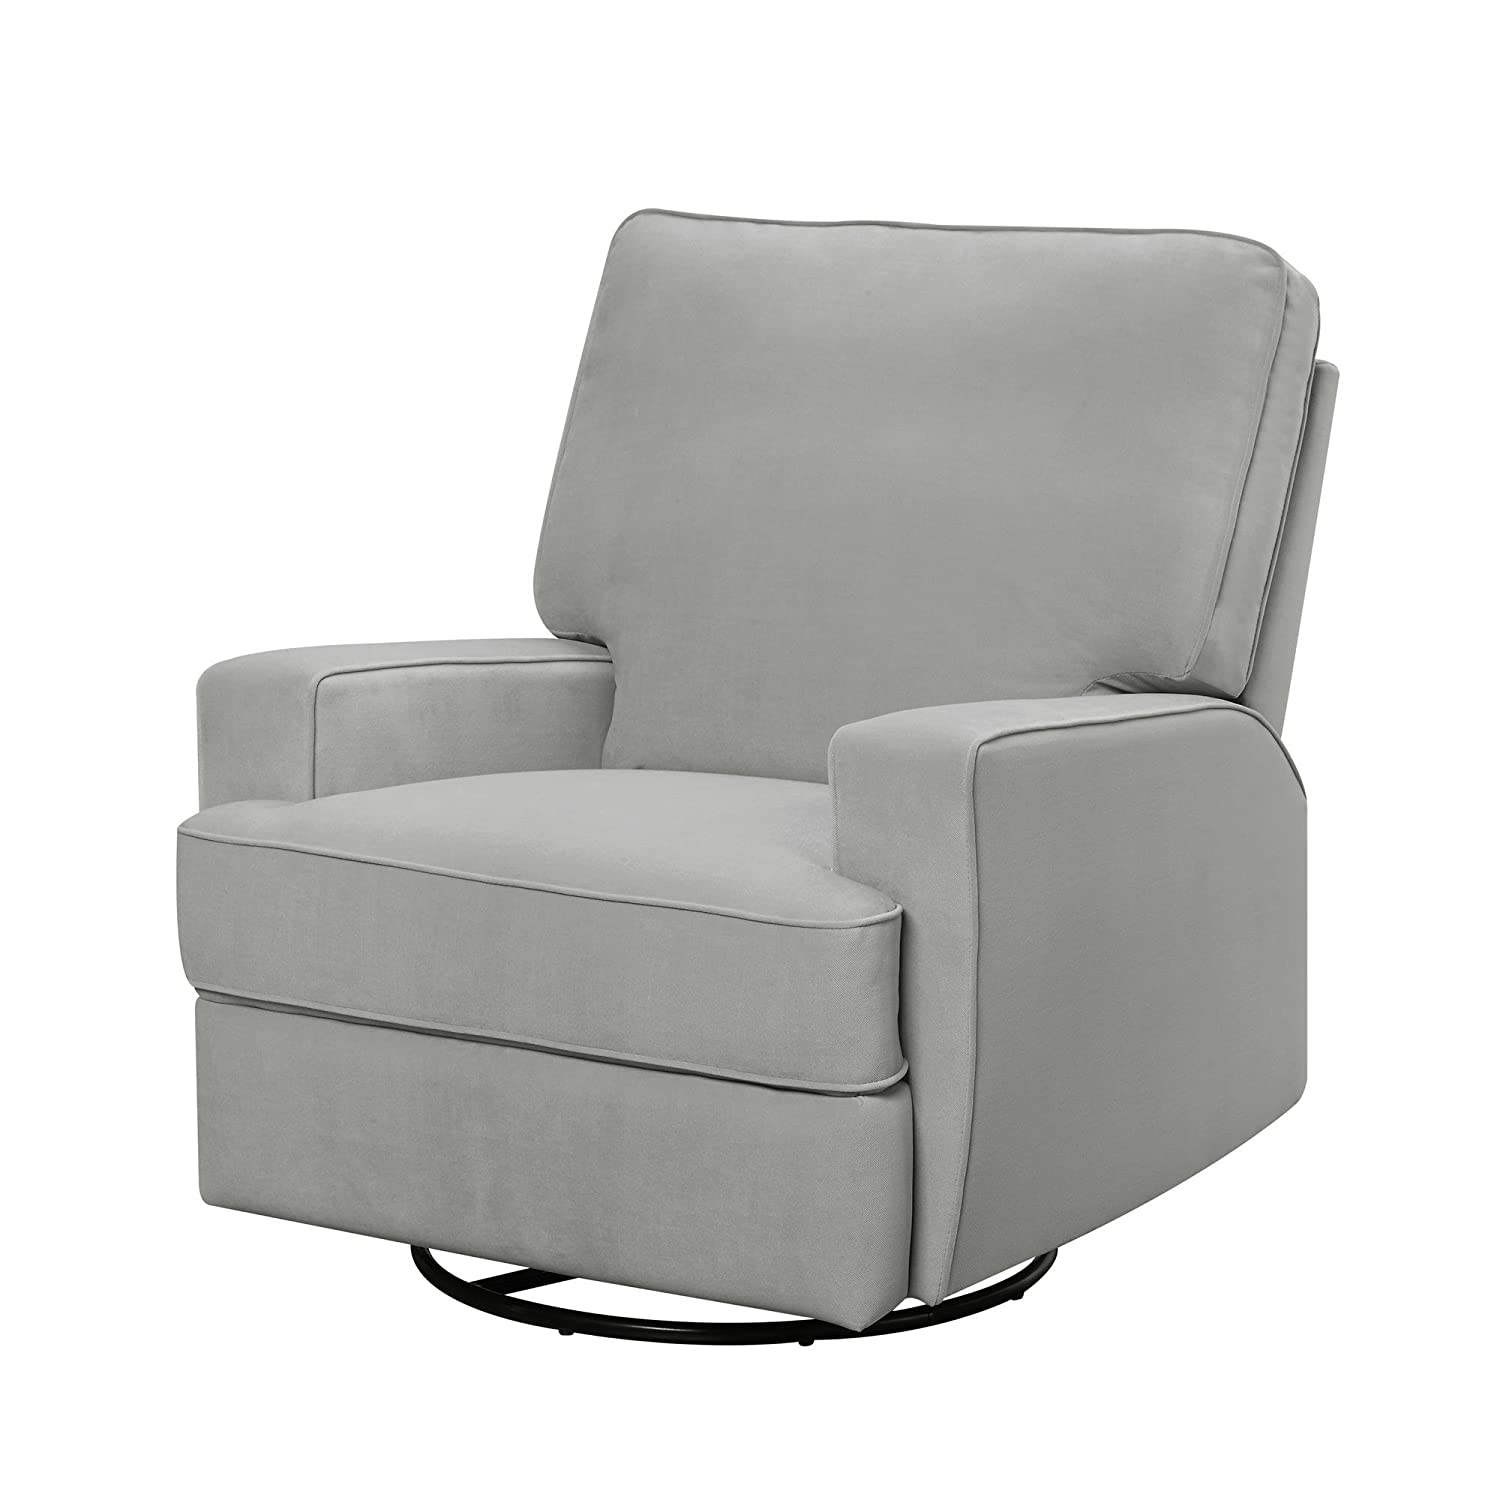 light furniture living rocker club polished button spaces bedroom grey metal comfortable also for small base microfiber big modern unique man and room swivel legs with recliners recliner leather chair footrest black brown